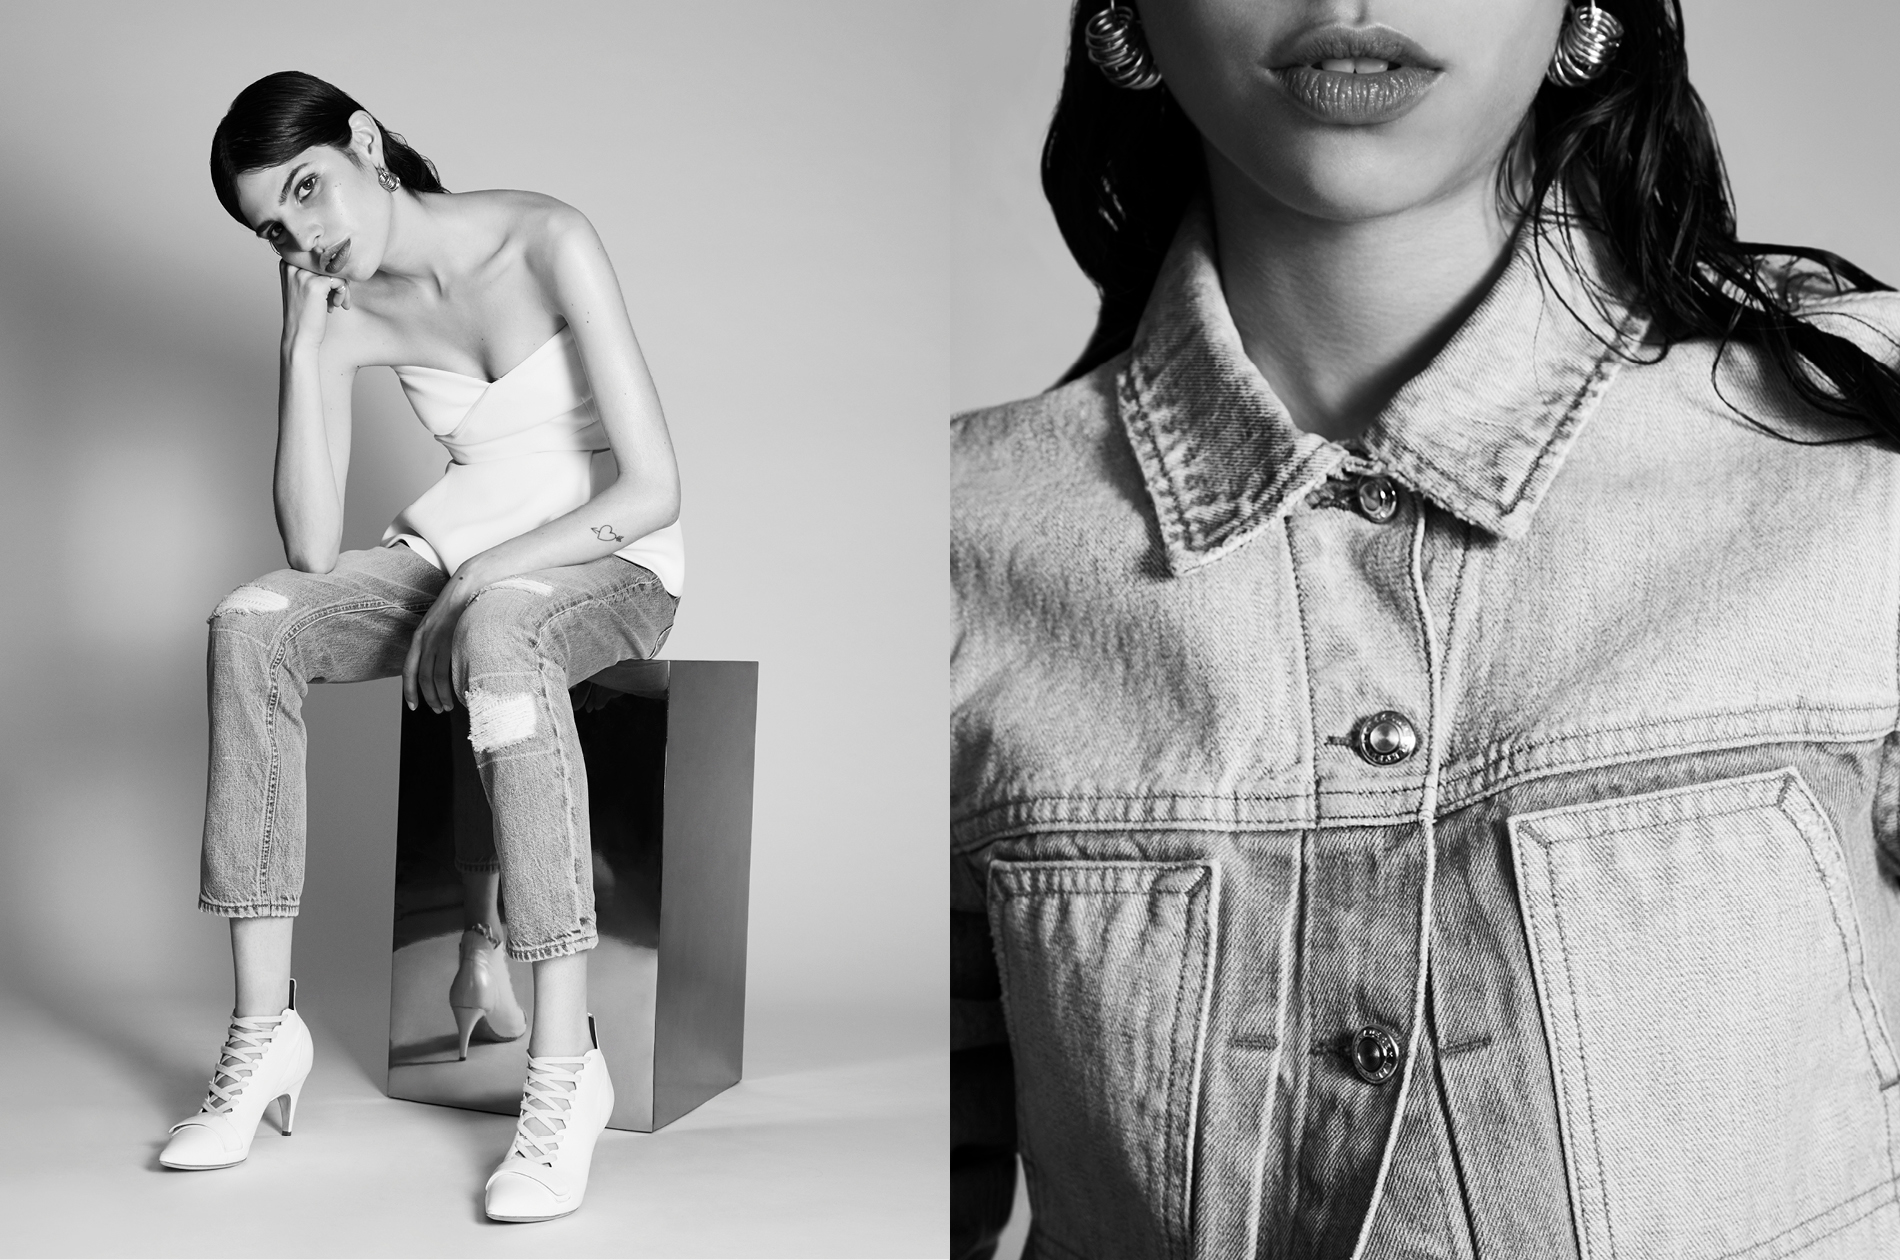 Derek Lam denim collection shot in DTE's in-house studio.